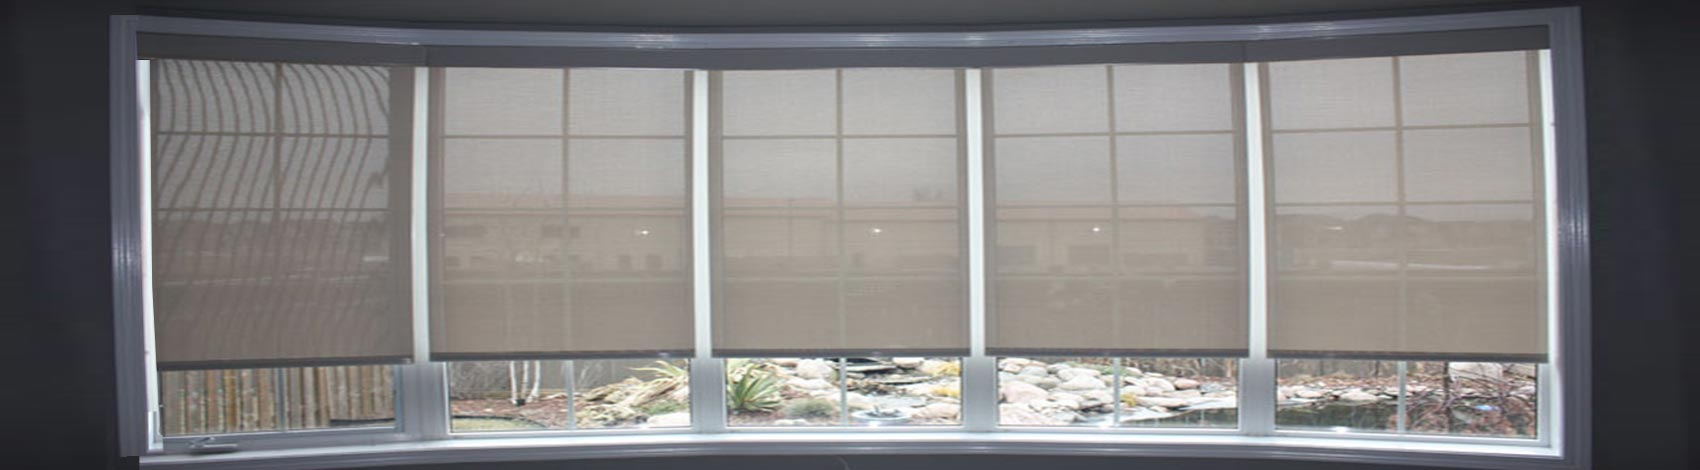 motorized-blinds-panel